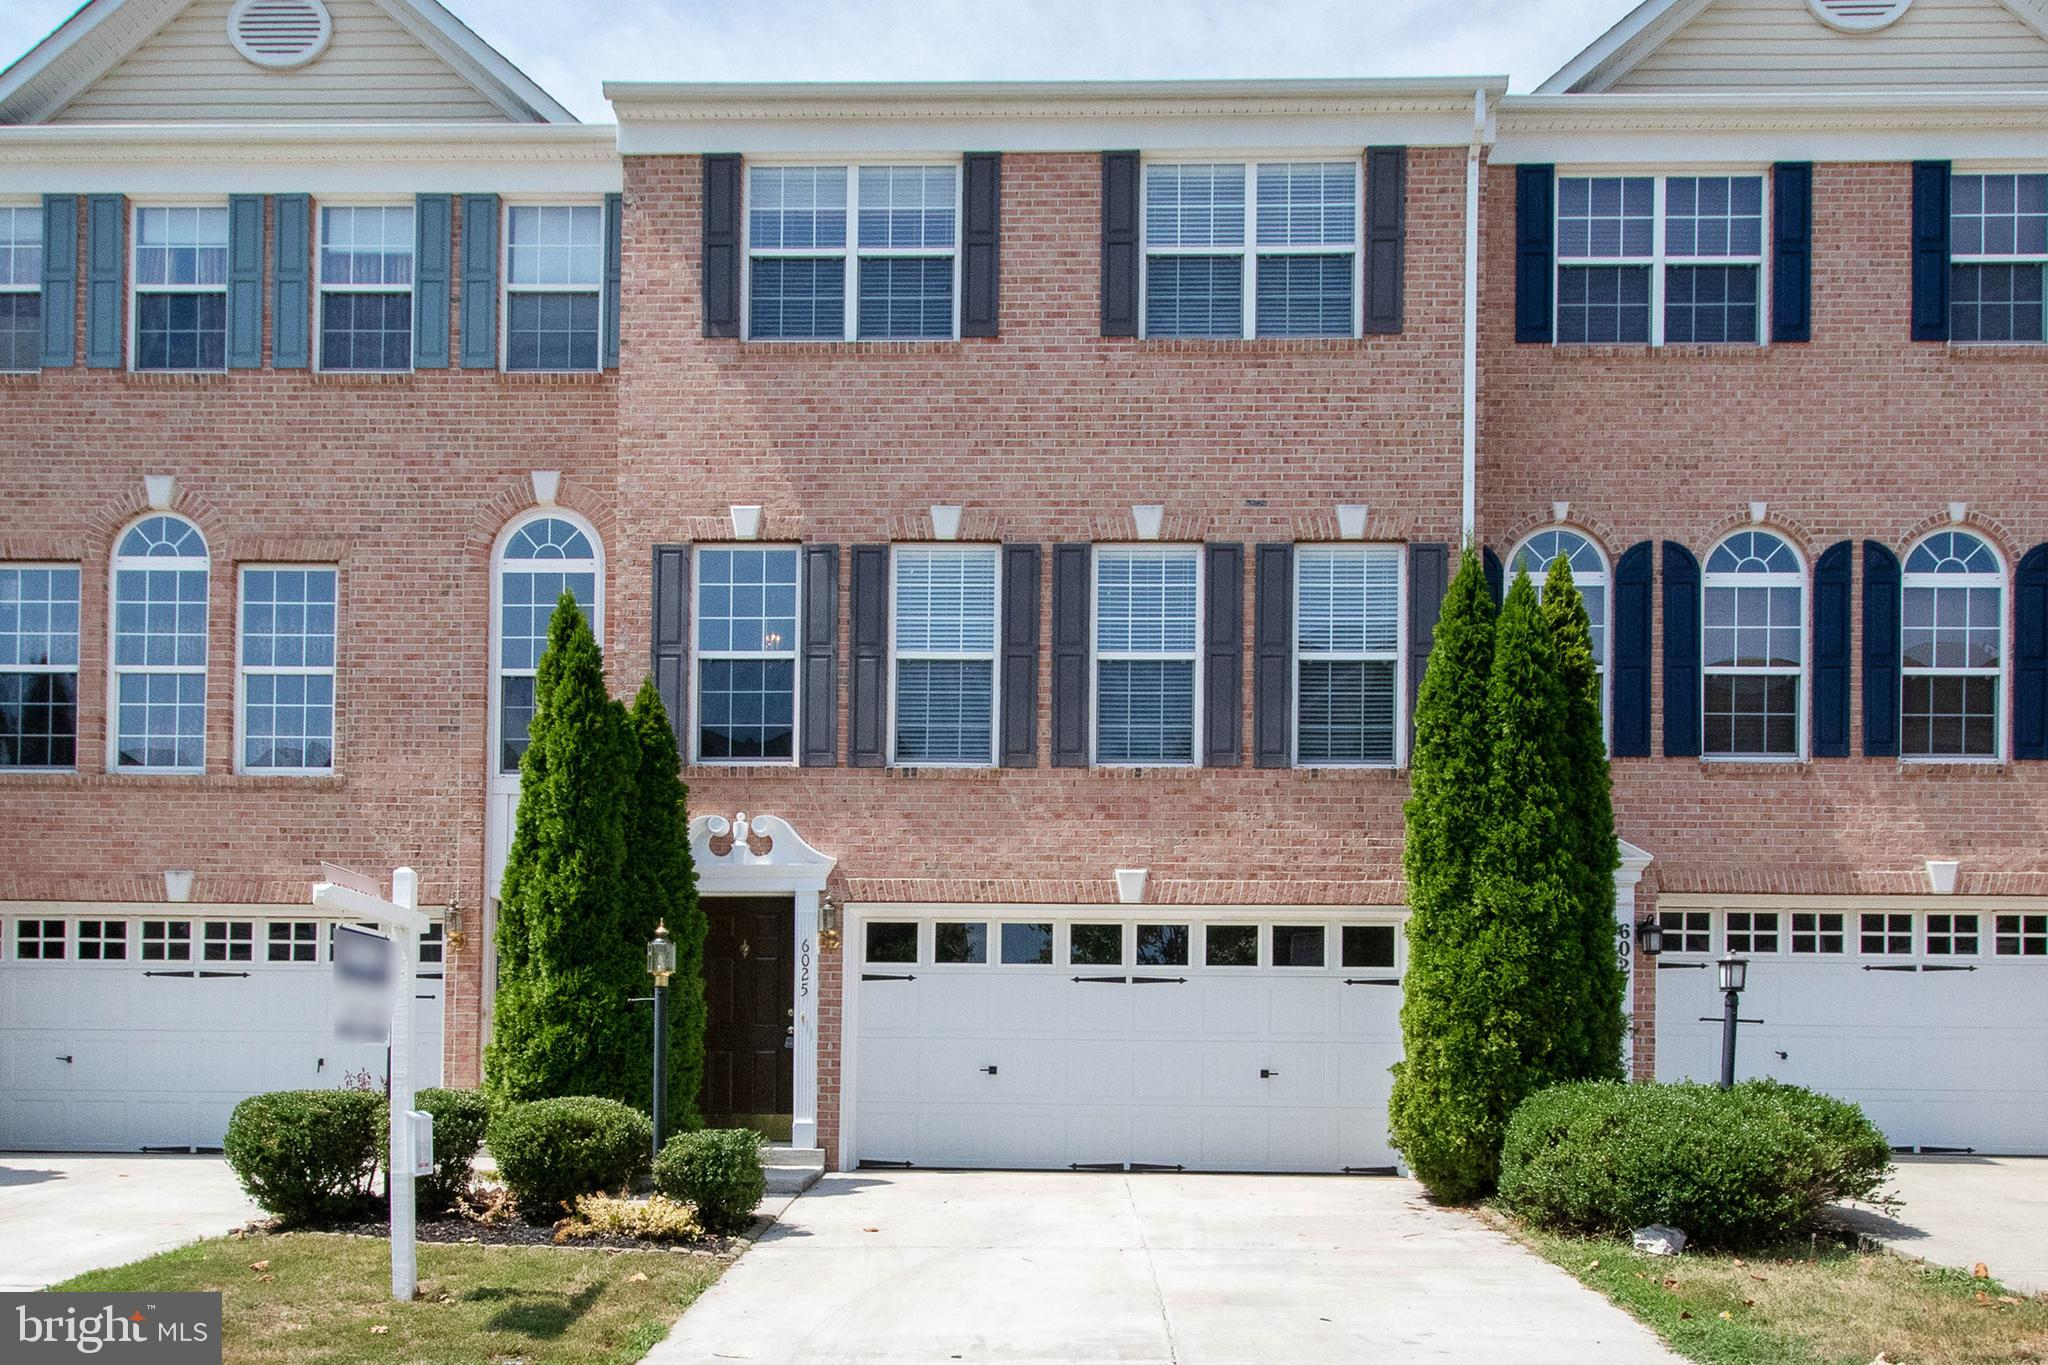 Sunlit TURN-KEY 3BR/2.5BA townhouse with STATELY brick front, 2-CAR GARAGE & ALL levels finished in